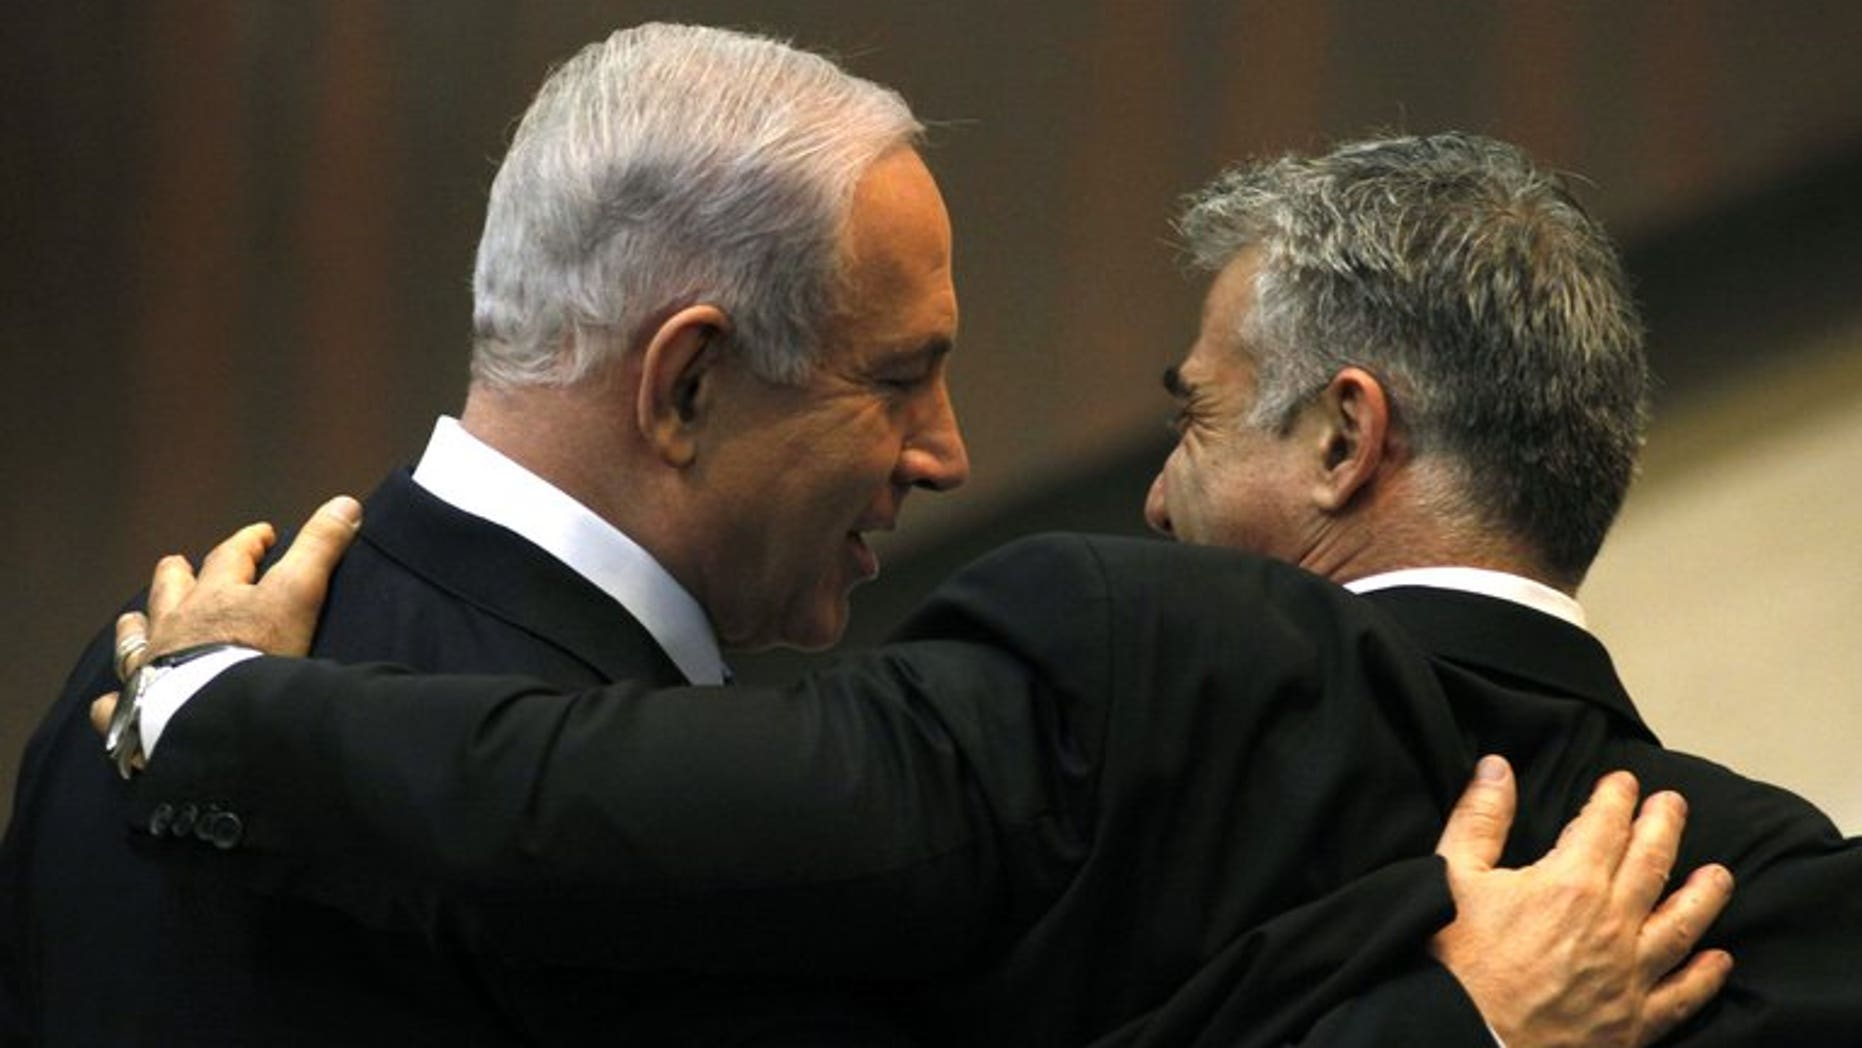 Israeli Prime Minister Benjamin Netanyahu (L) and Yair Lapid, during a parliament session on March 18, 2013 in Jerusalem. Economist Leo Leiderman was named Israel's central banker on Wednesday, days after the previous candidate pulled out after an investigation against him on a shoplifting allegation.